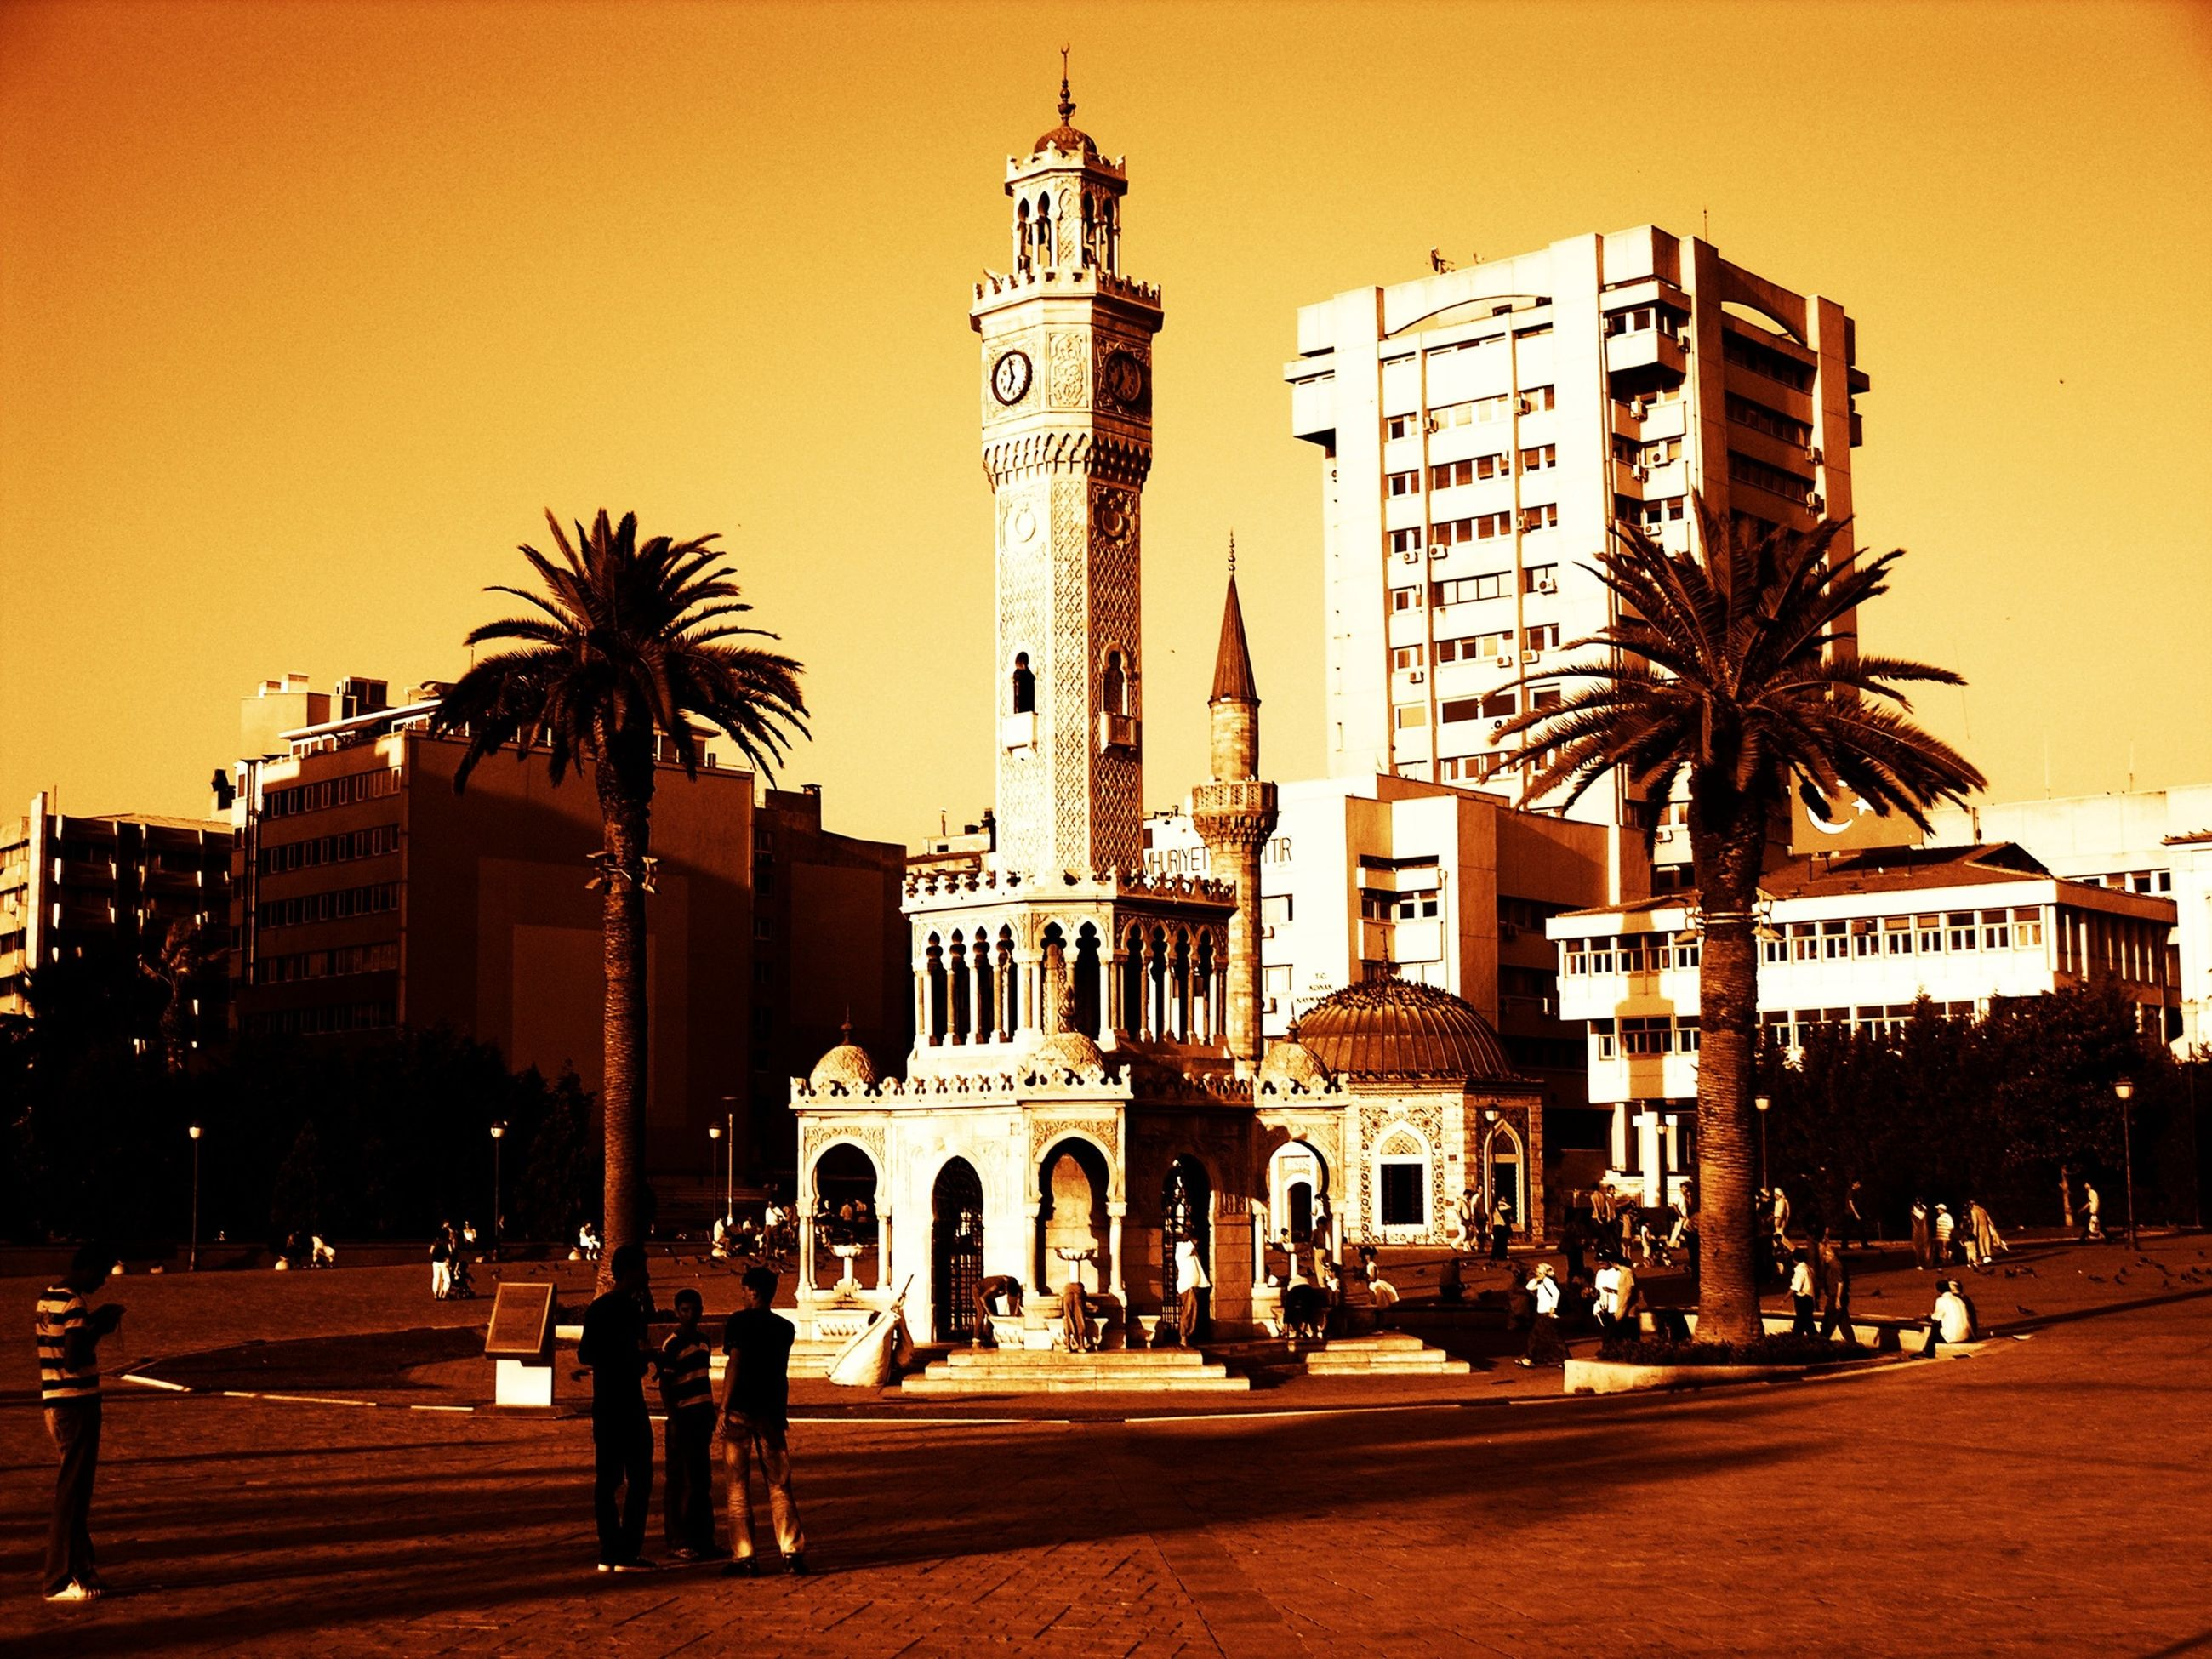 building exterior, architecture, built structure, city, street, palm tree, sunset, tree, tall - high, city life, building, sky, tower, incidental people, street light, city street, clear sky, road, travel destinations, residential building